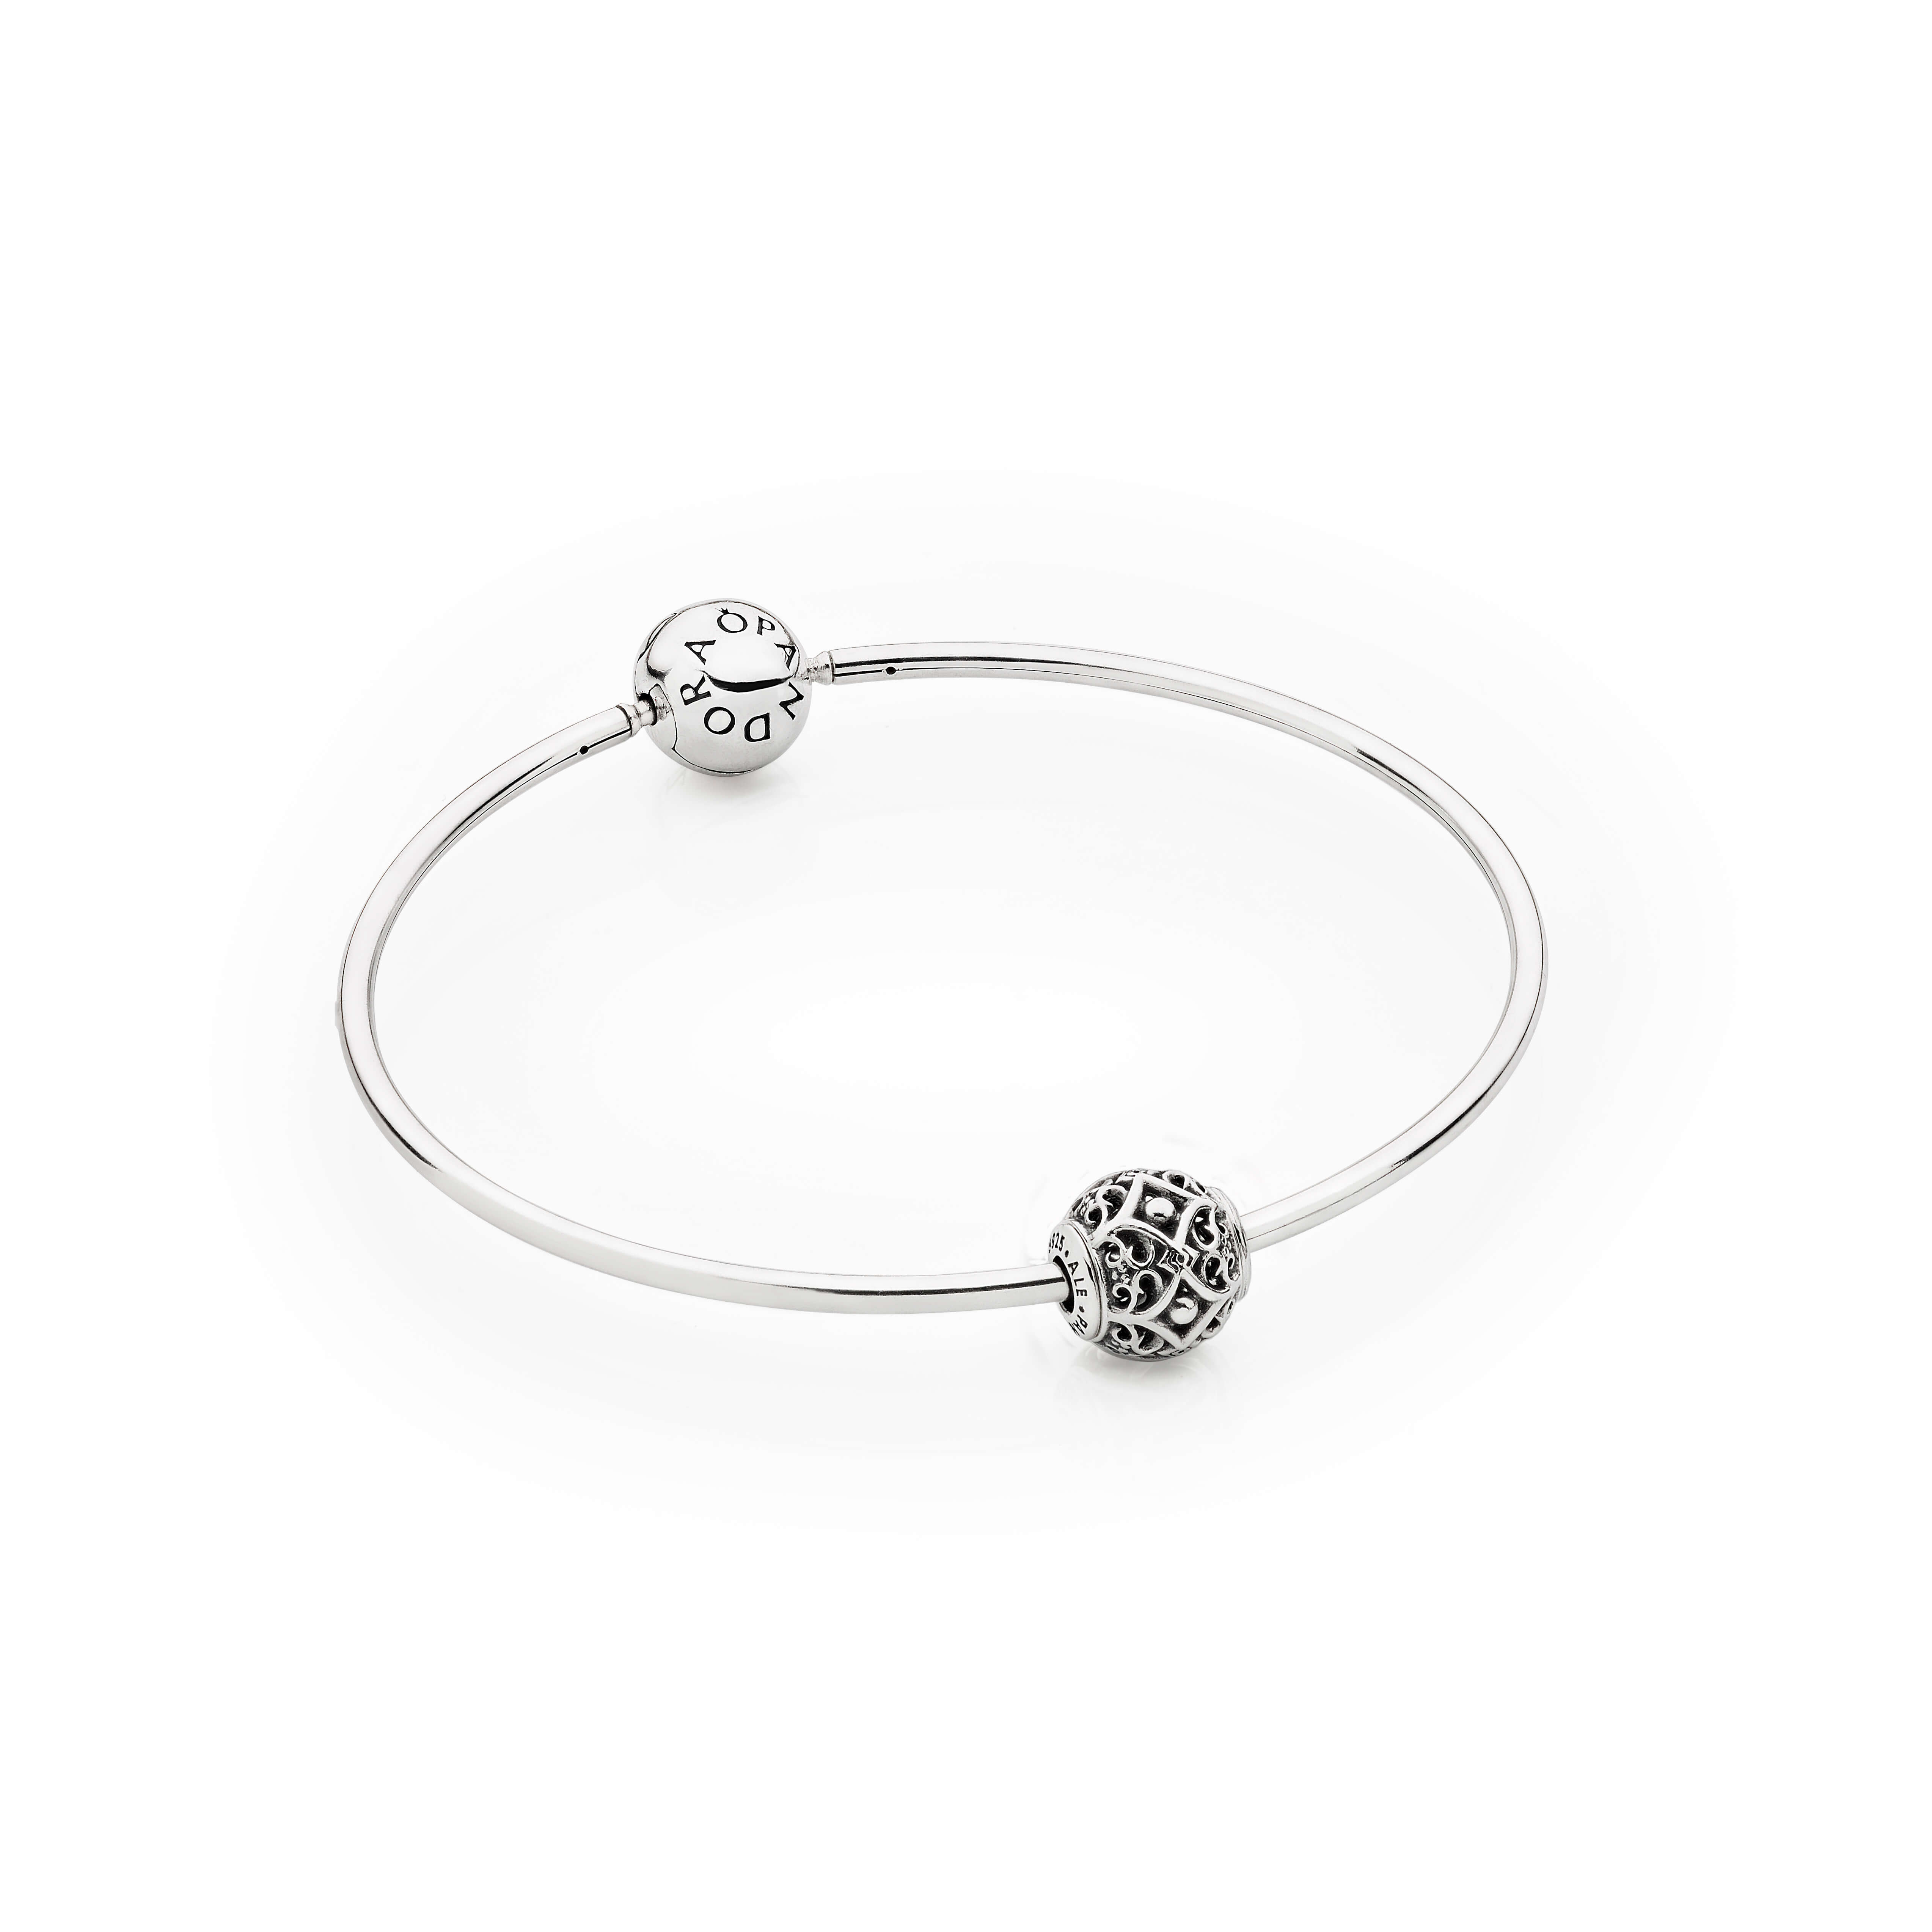 Pandora essence bangle bracelet with affection charm for How much does pandora jewelry pay